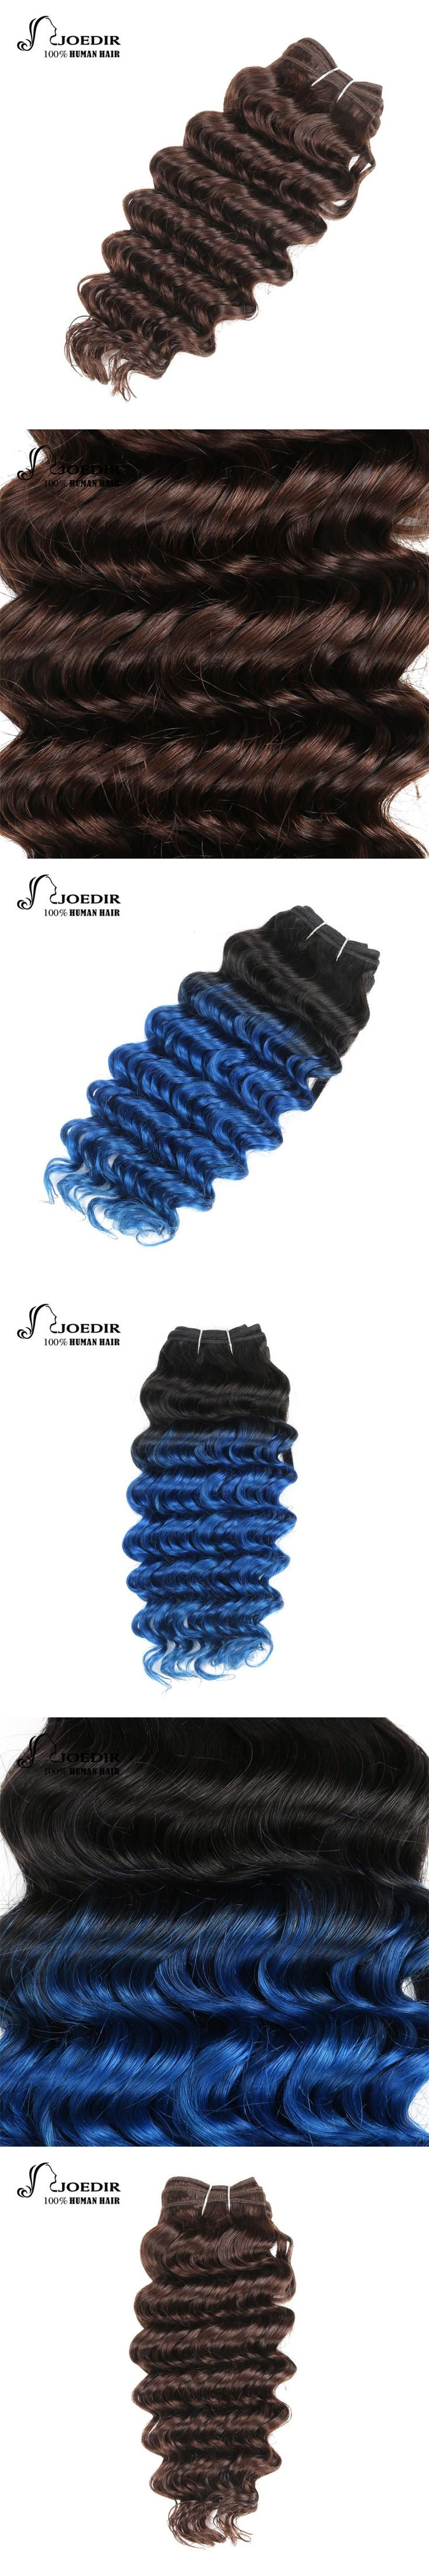 Joedir Hair Pre-Colored Brazilian Remy Human Hair Weave Nature Deep Wave #4 chocolate Brown Color #T1B-Blue Free Shipping